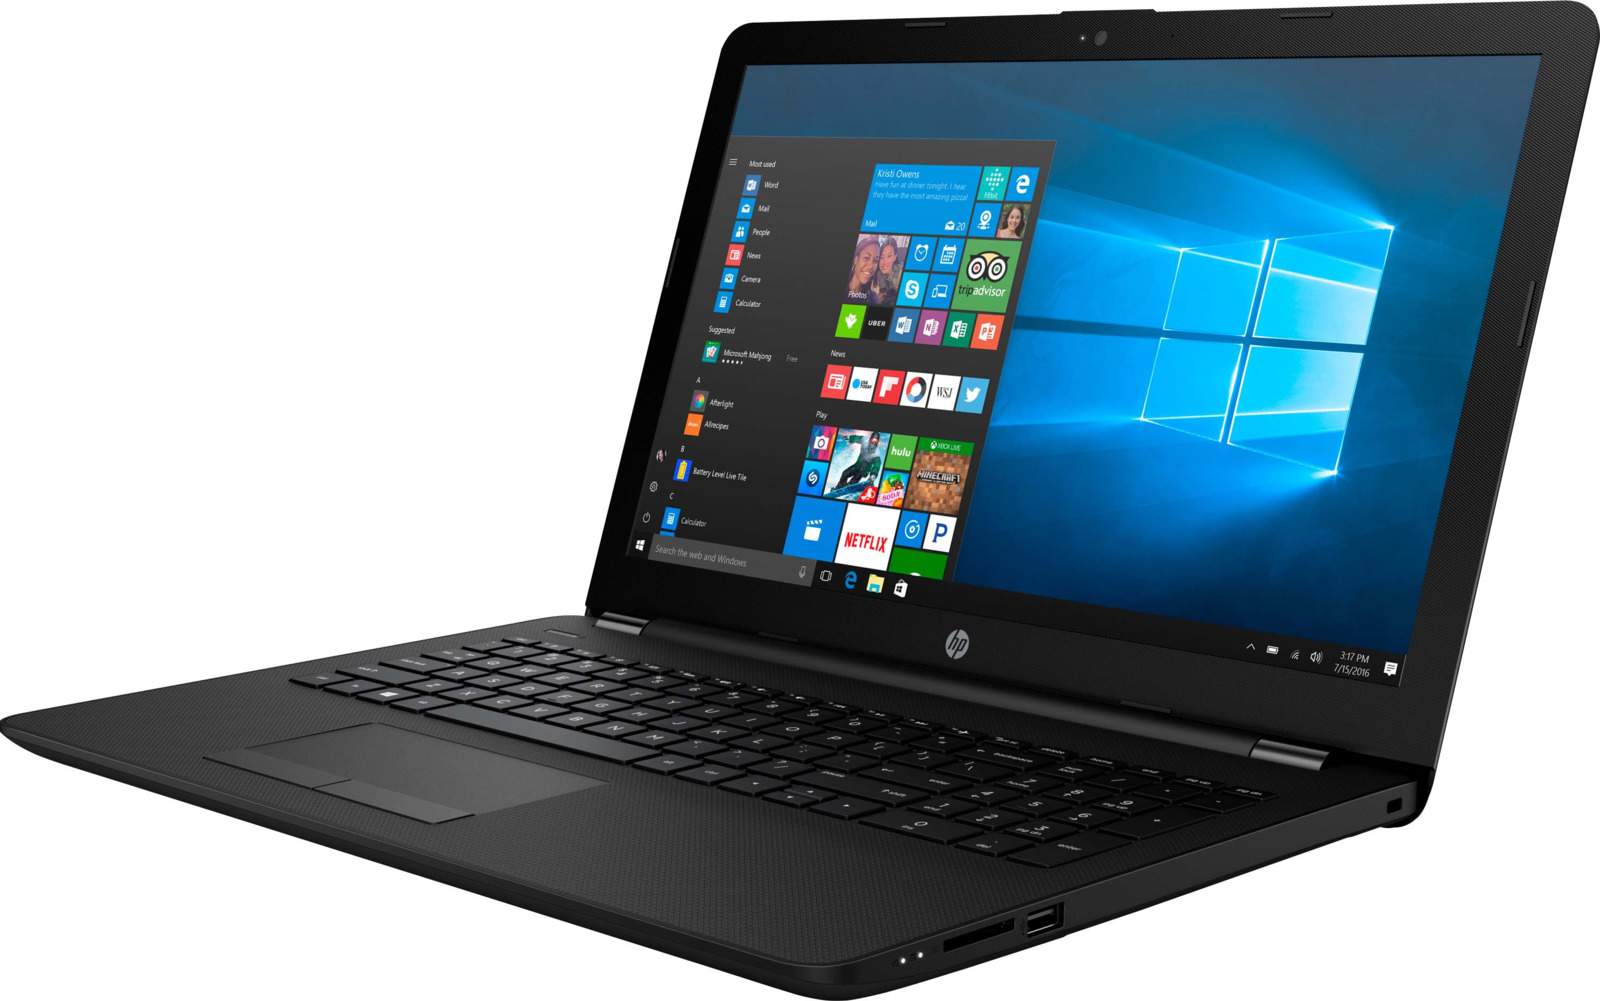 Ноутбук HP 15-bs019ur, Black ноутбук hp 15 bs019ur 1zj85ea core i5 7200u 6gb 1tb 128gb ssd amd 530 4gb 15 6 fullhd win10 black